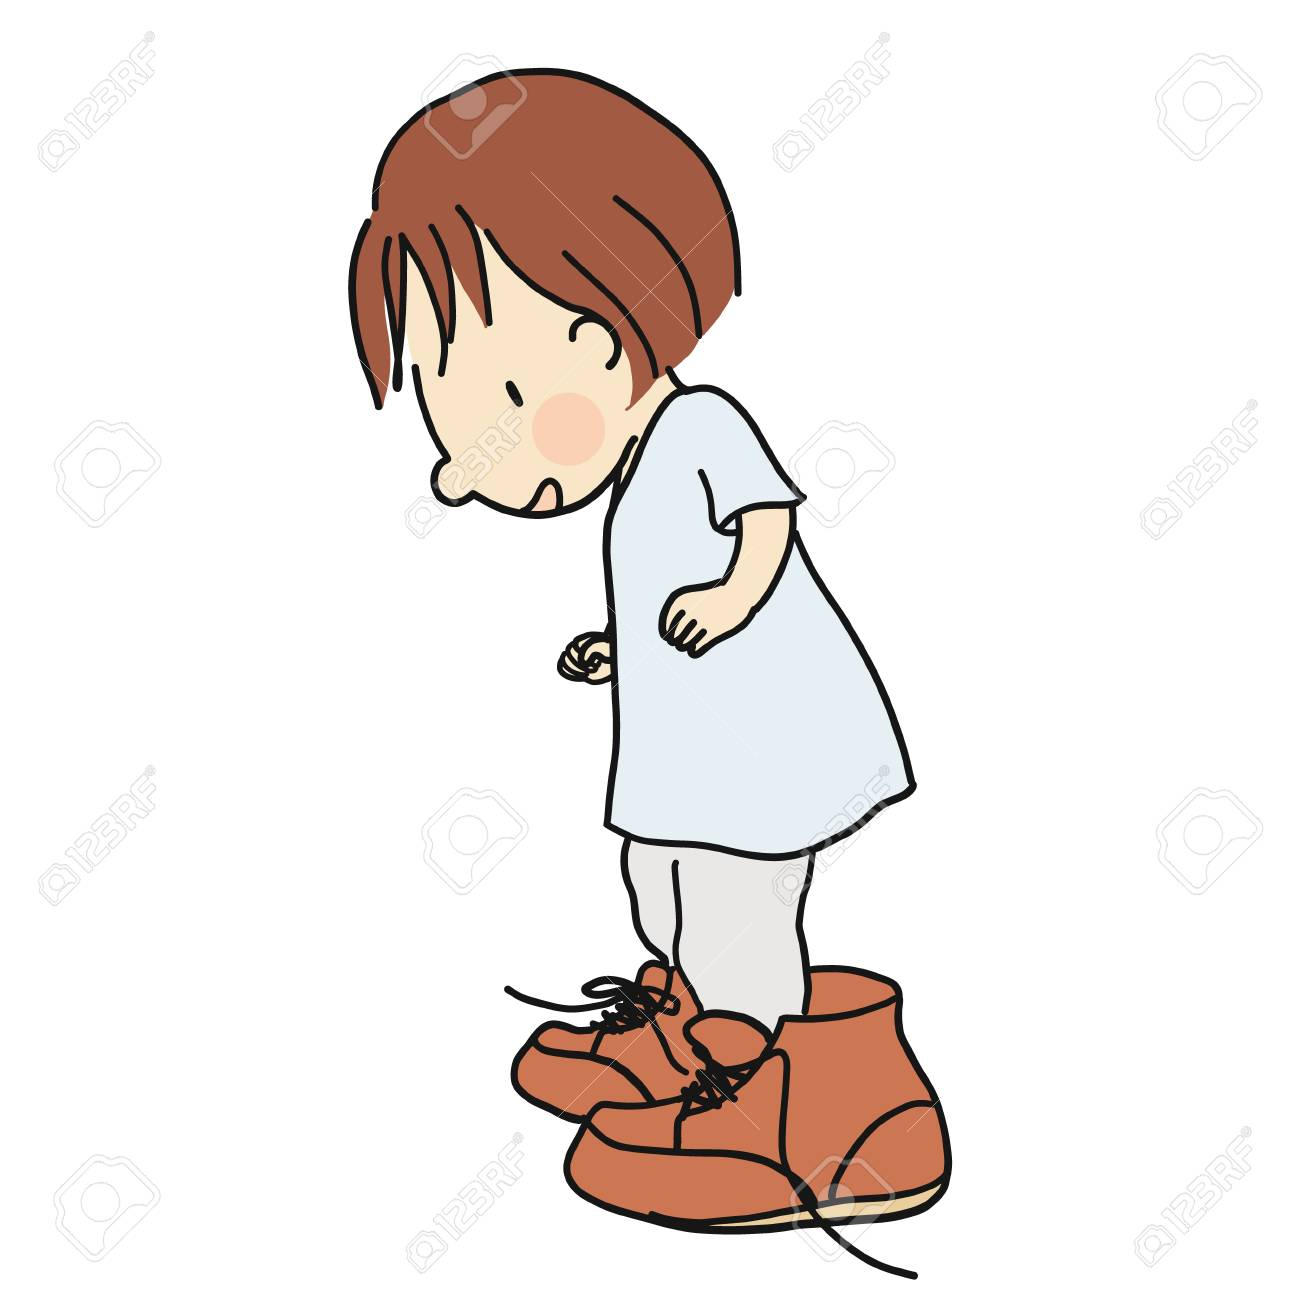 1300x1300 Vector Illustration Of Little Kid Wearing Daddy's Big Brown